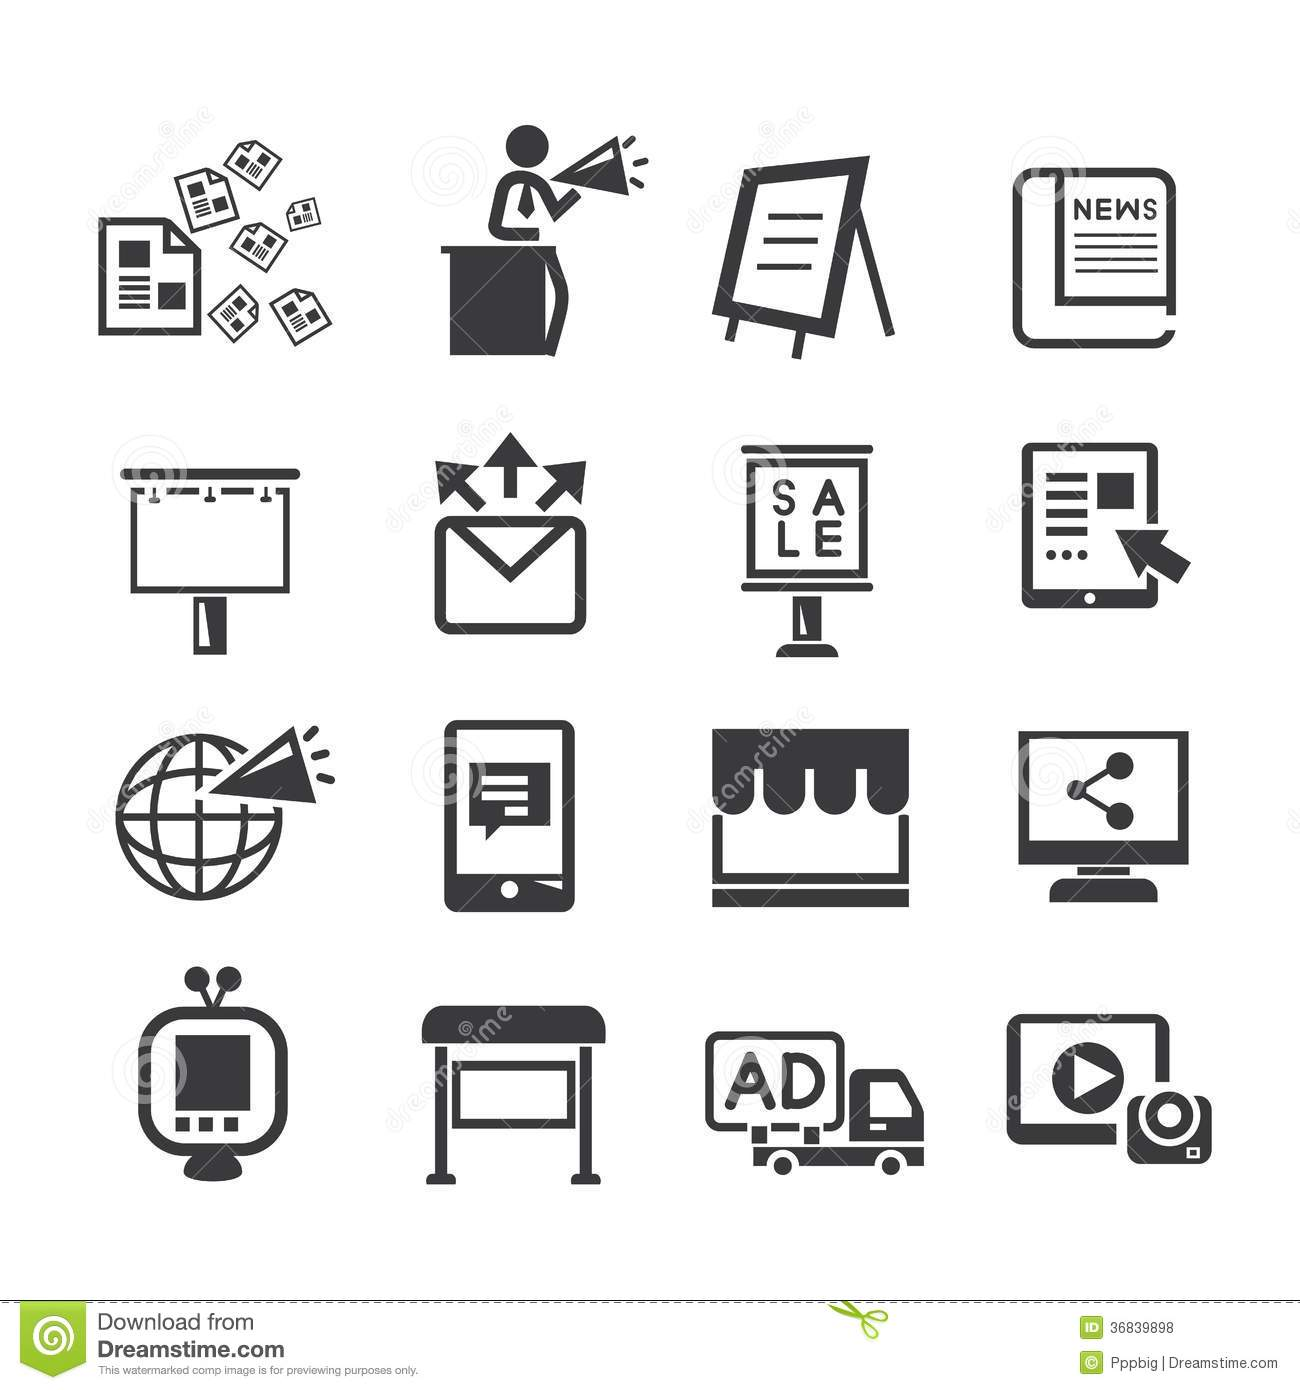 Advertising and Marketing Icons